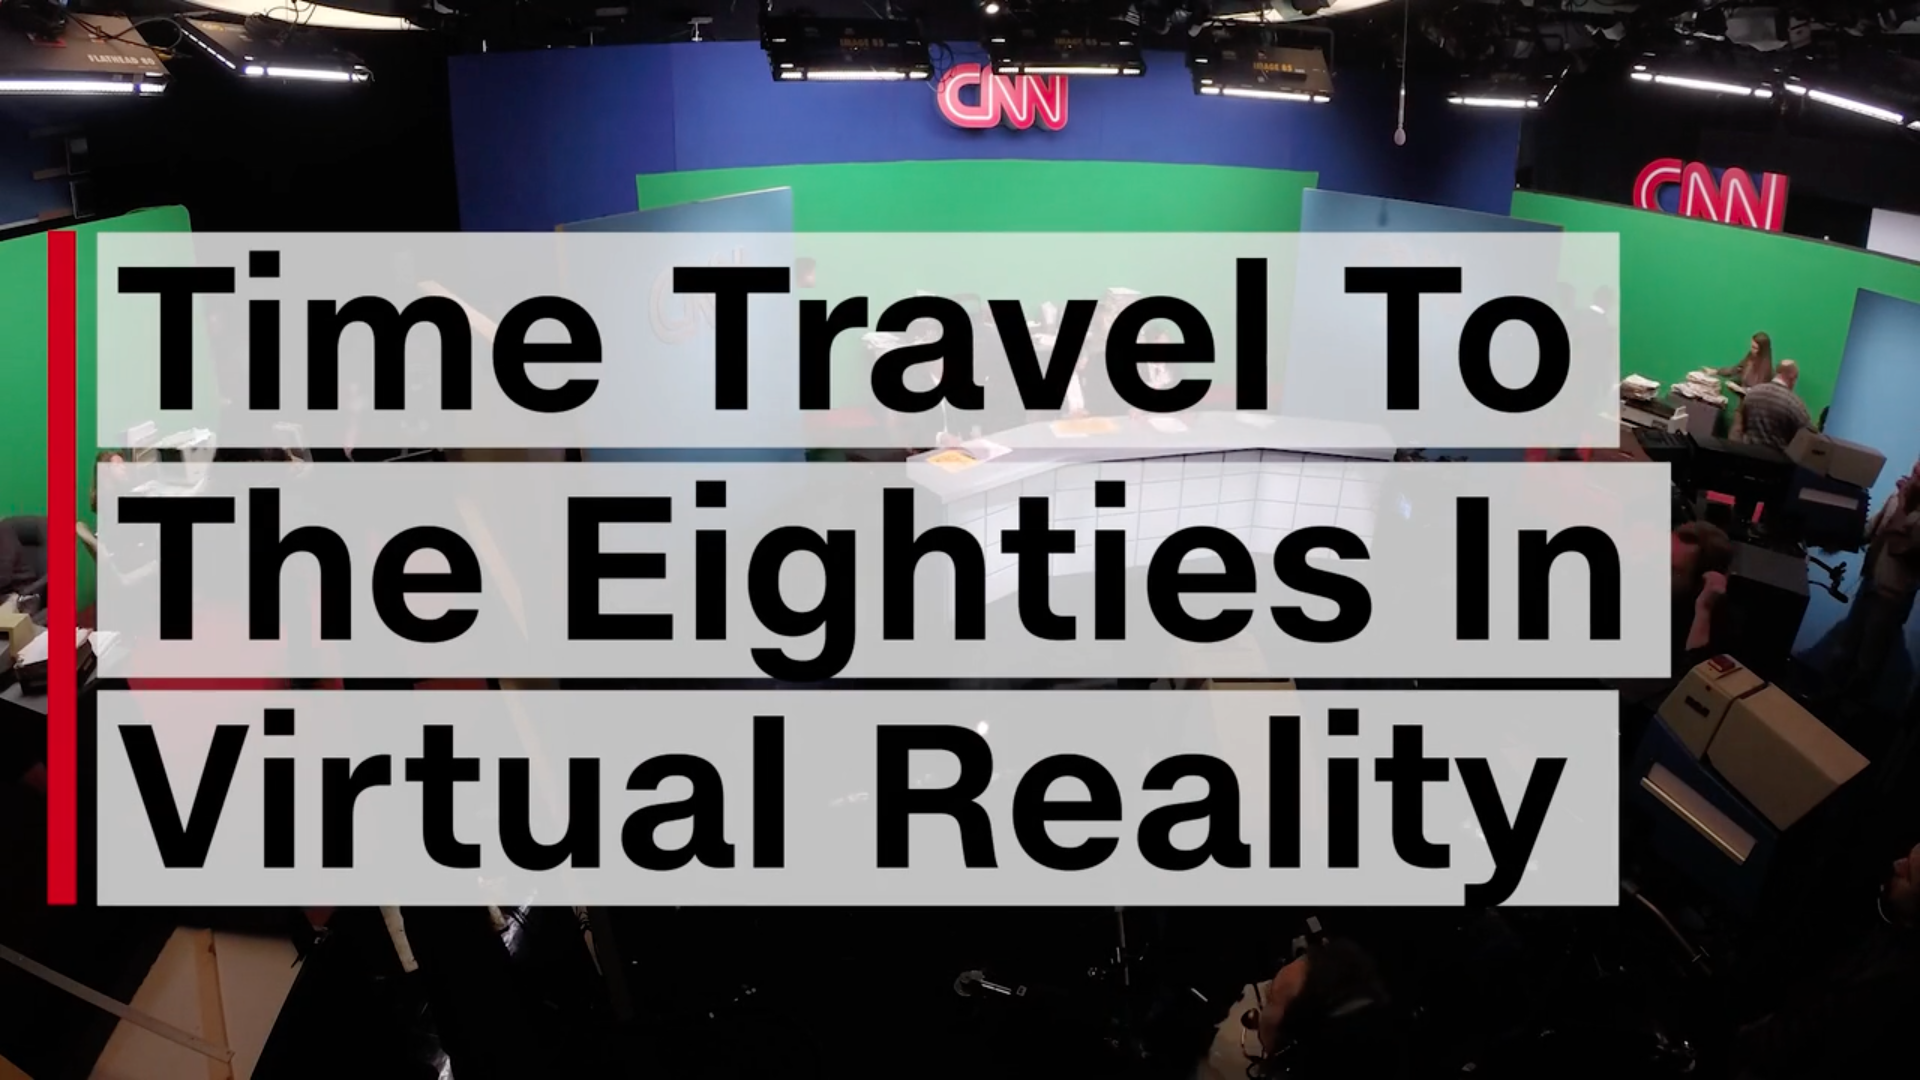 CNNVR TIME TRAVELS TO THE EIGHTIES